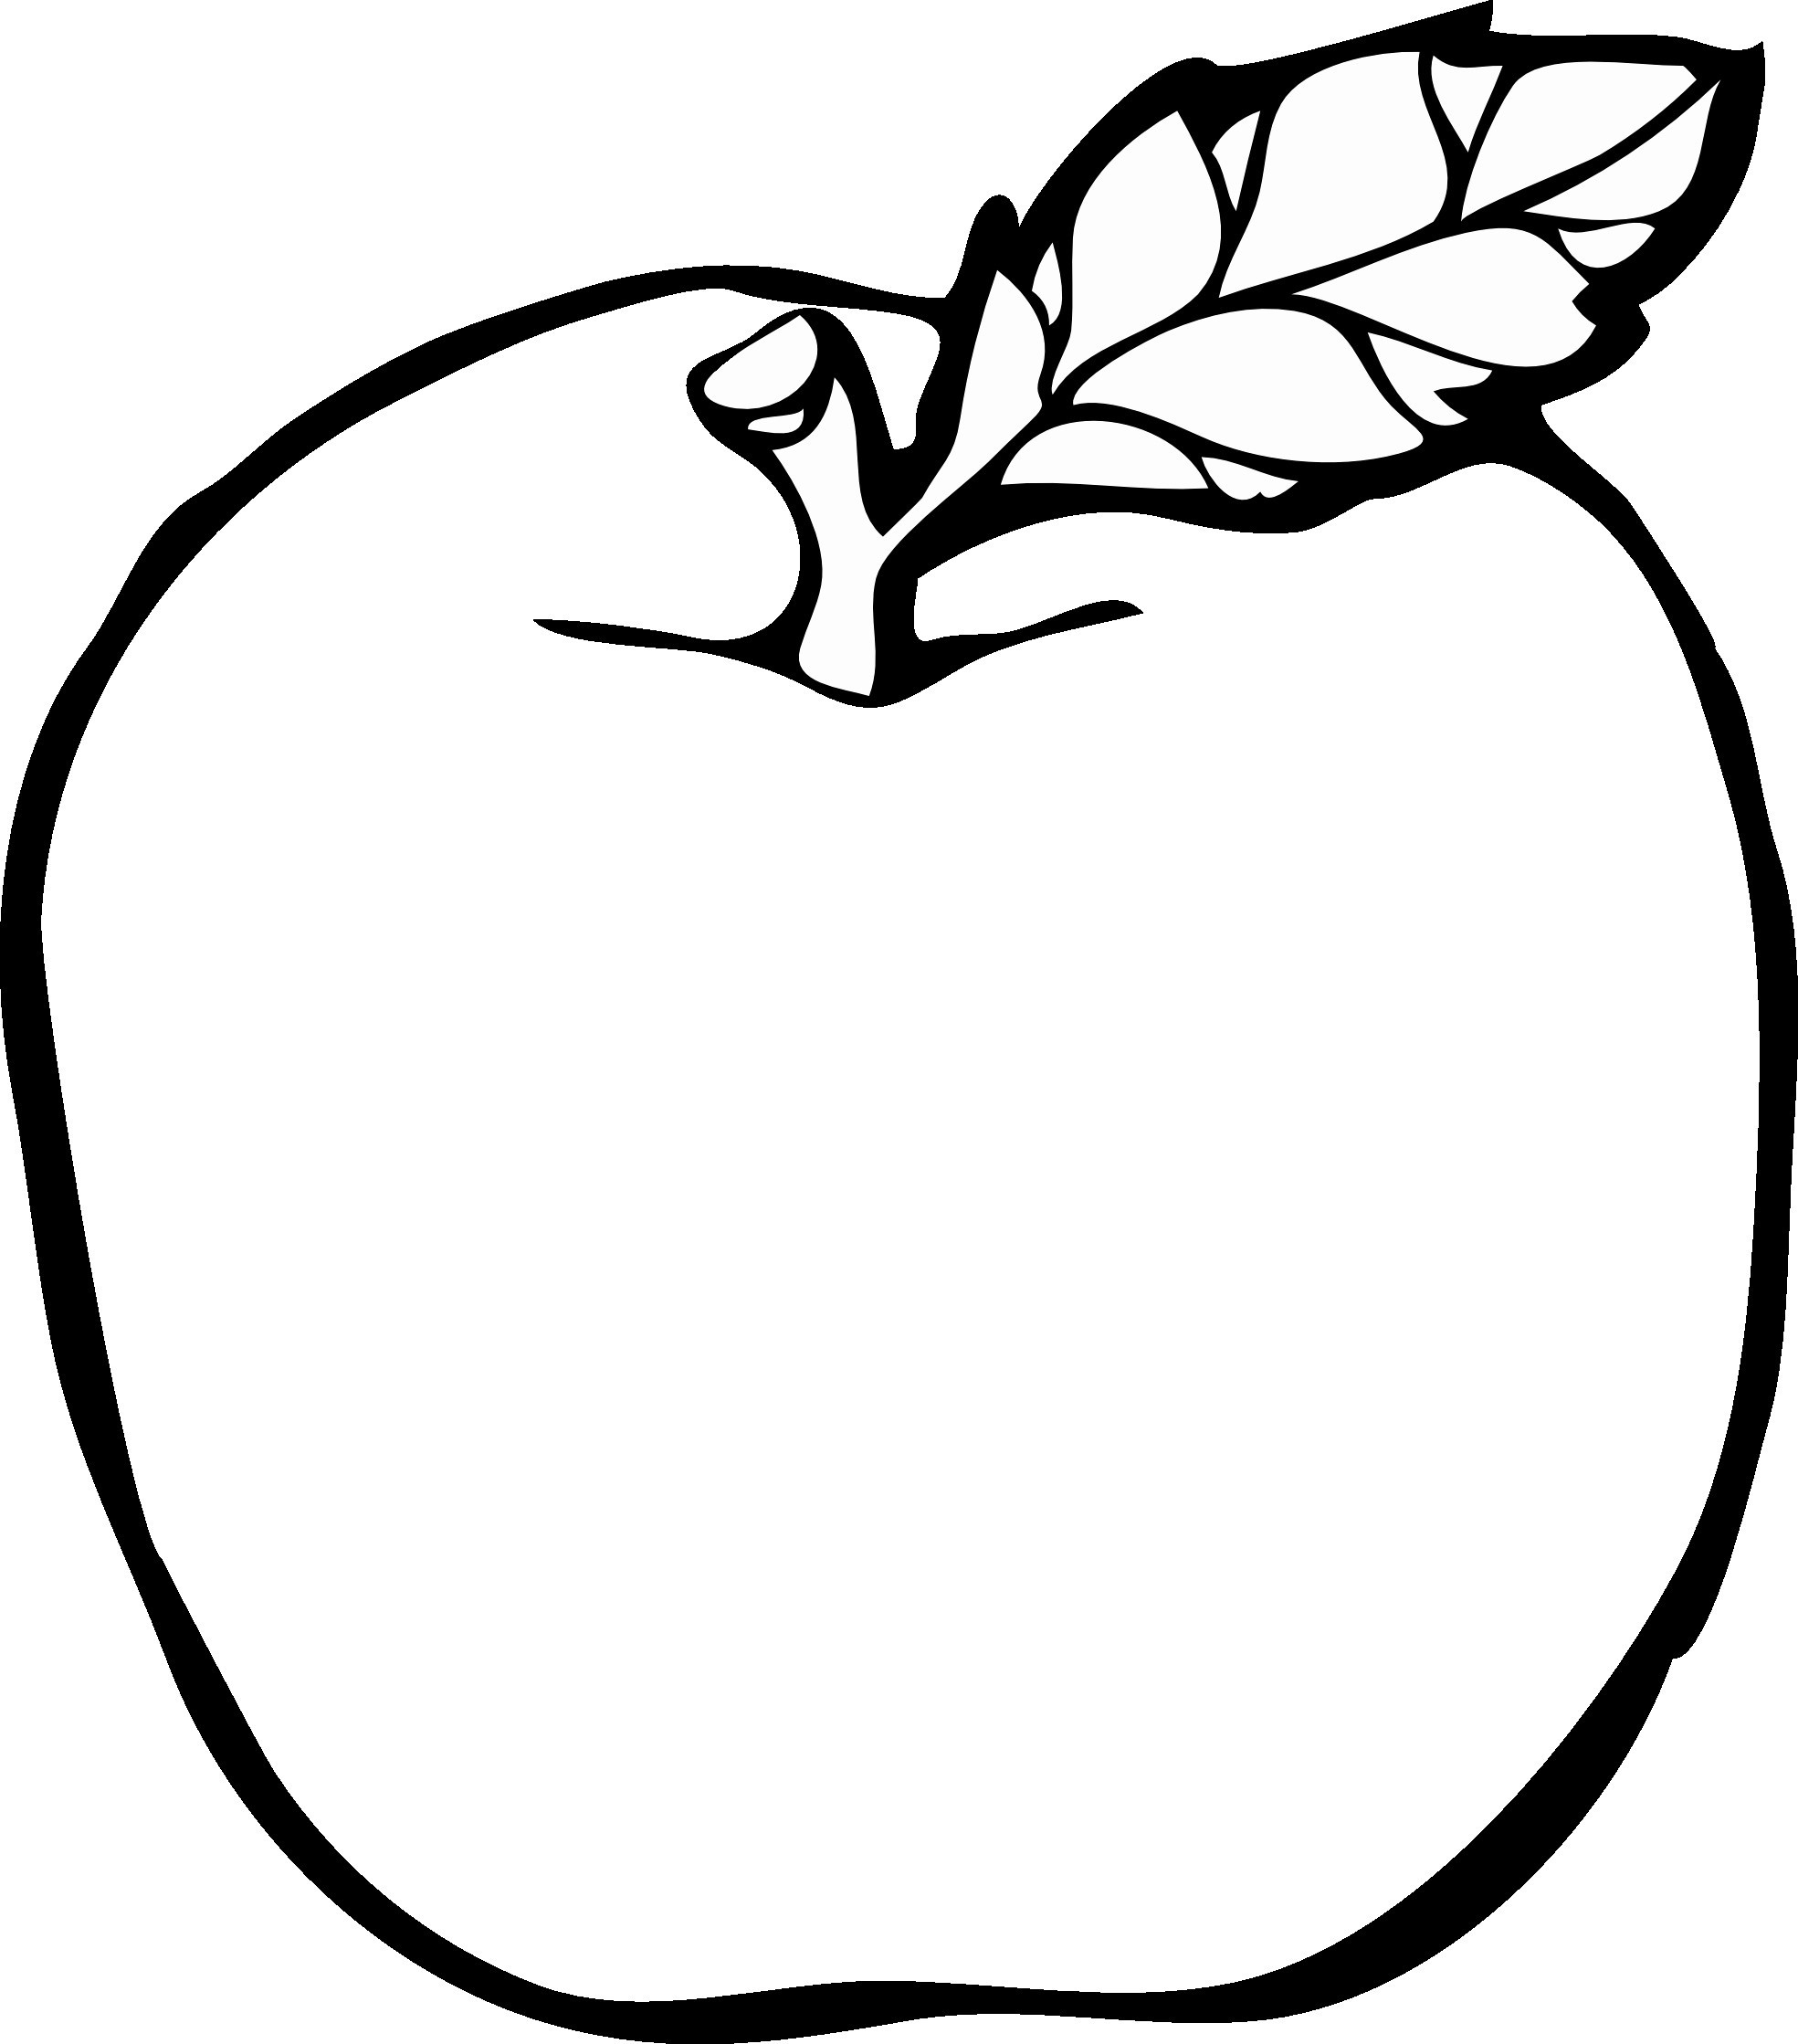 Apple sketch clipart download At Apple Sketch Clipart Drawing Best | Clip Art download